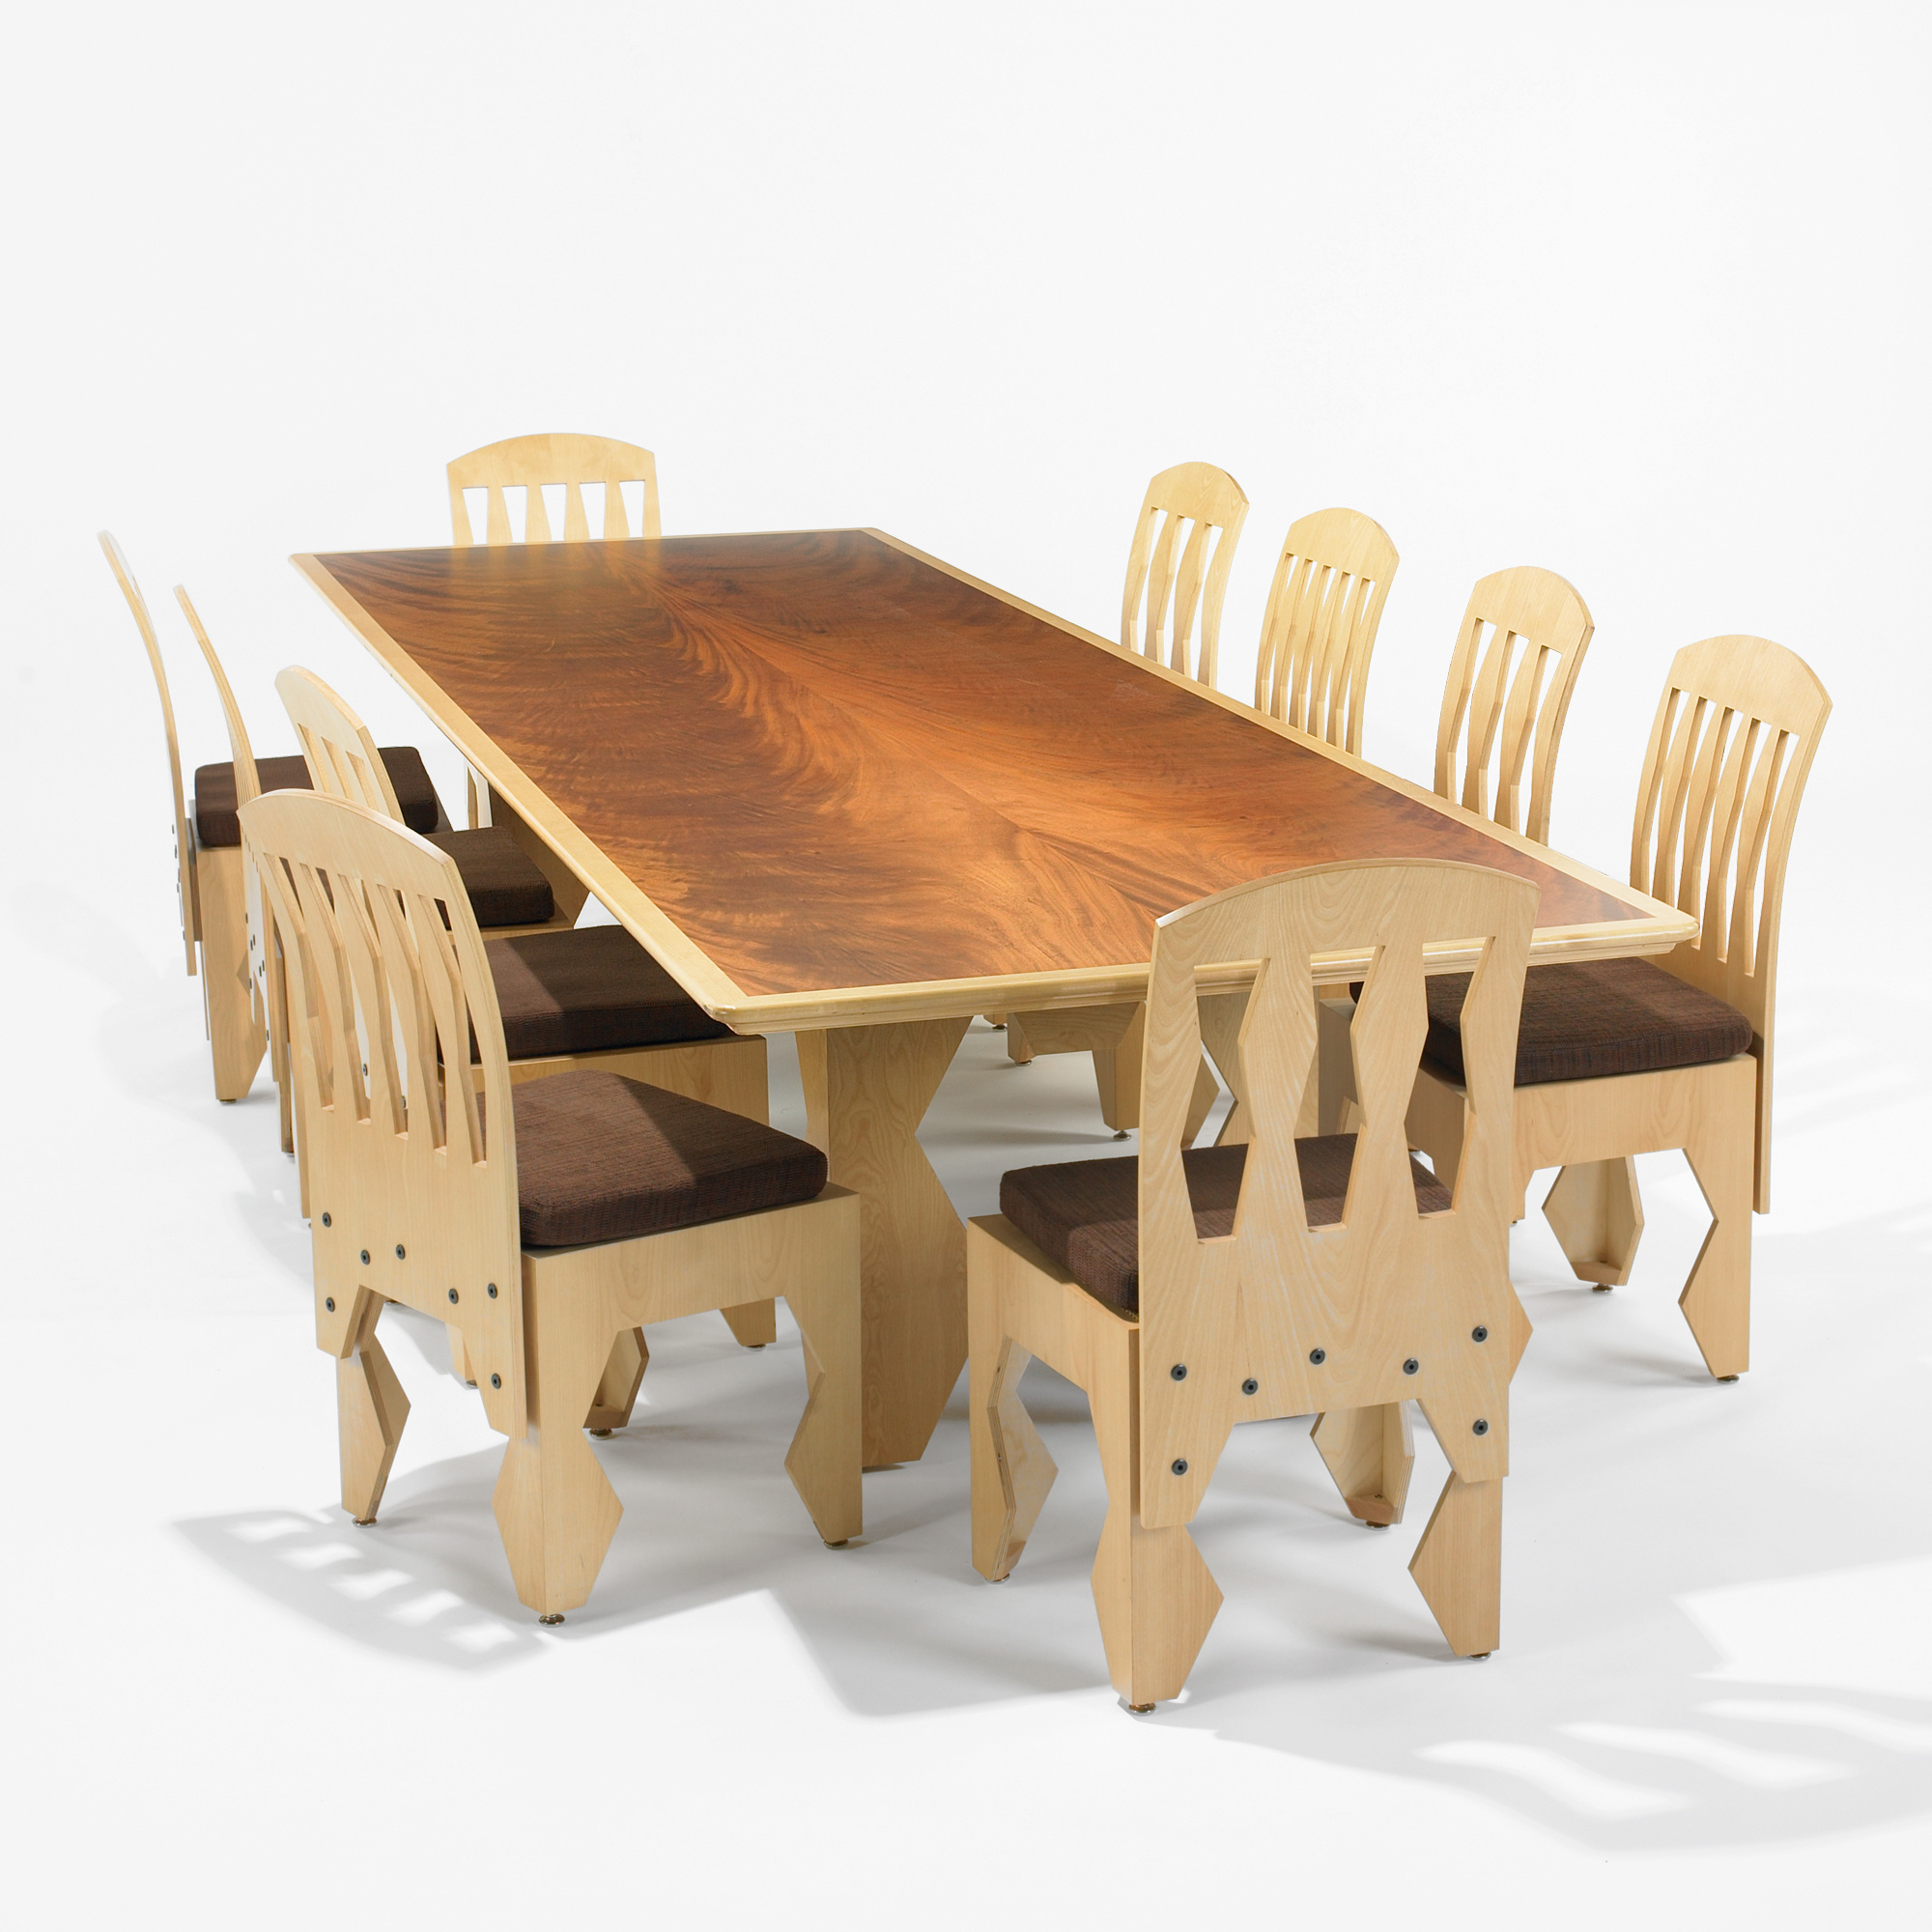 158 Laurence Booth Dining Table And Set Of Ten Chairs Mass Modern 9 July 2011 Auctions Wright Auctions Of Art And Design